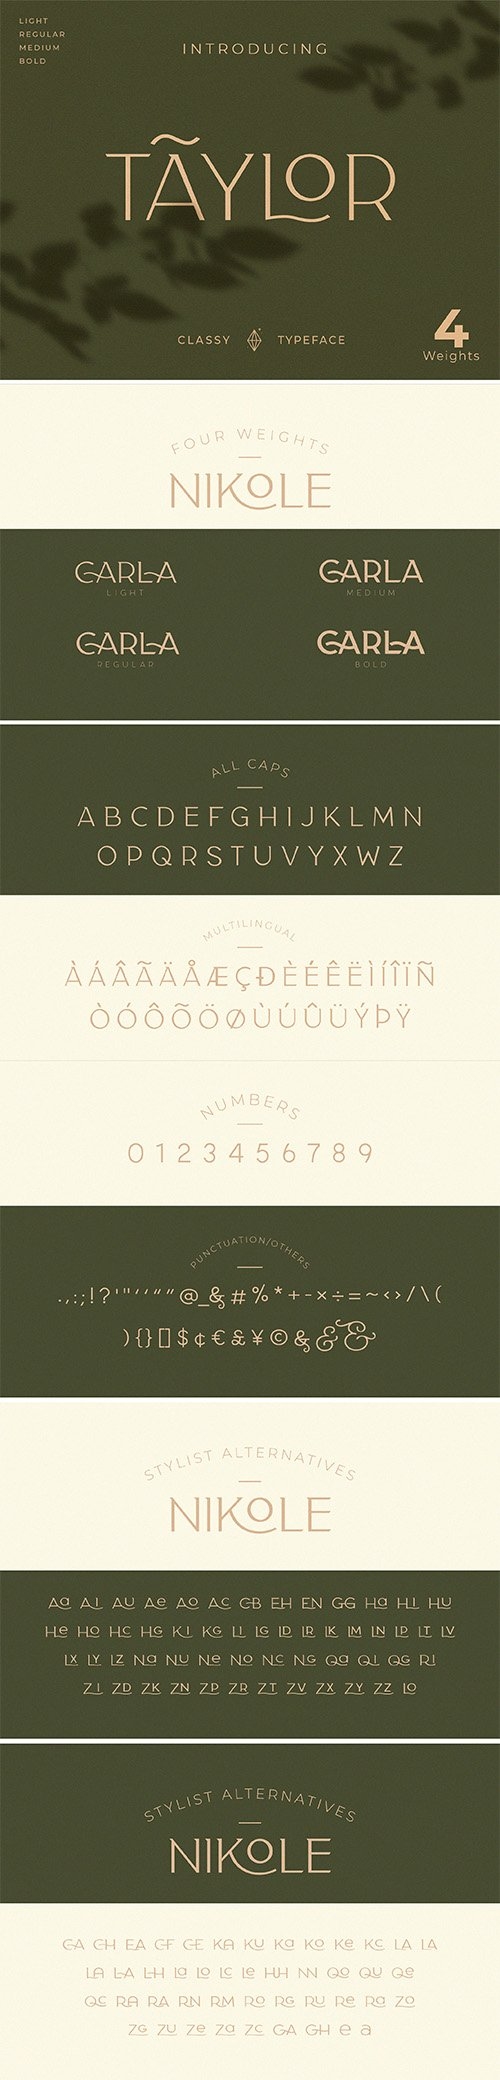 Classy Taylor Typeface